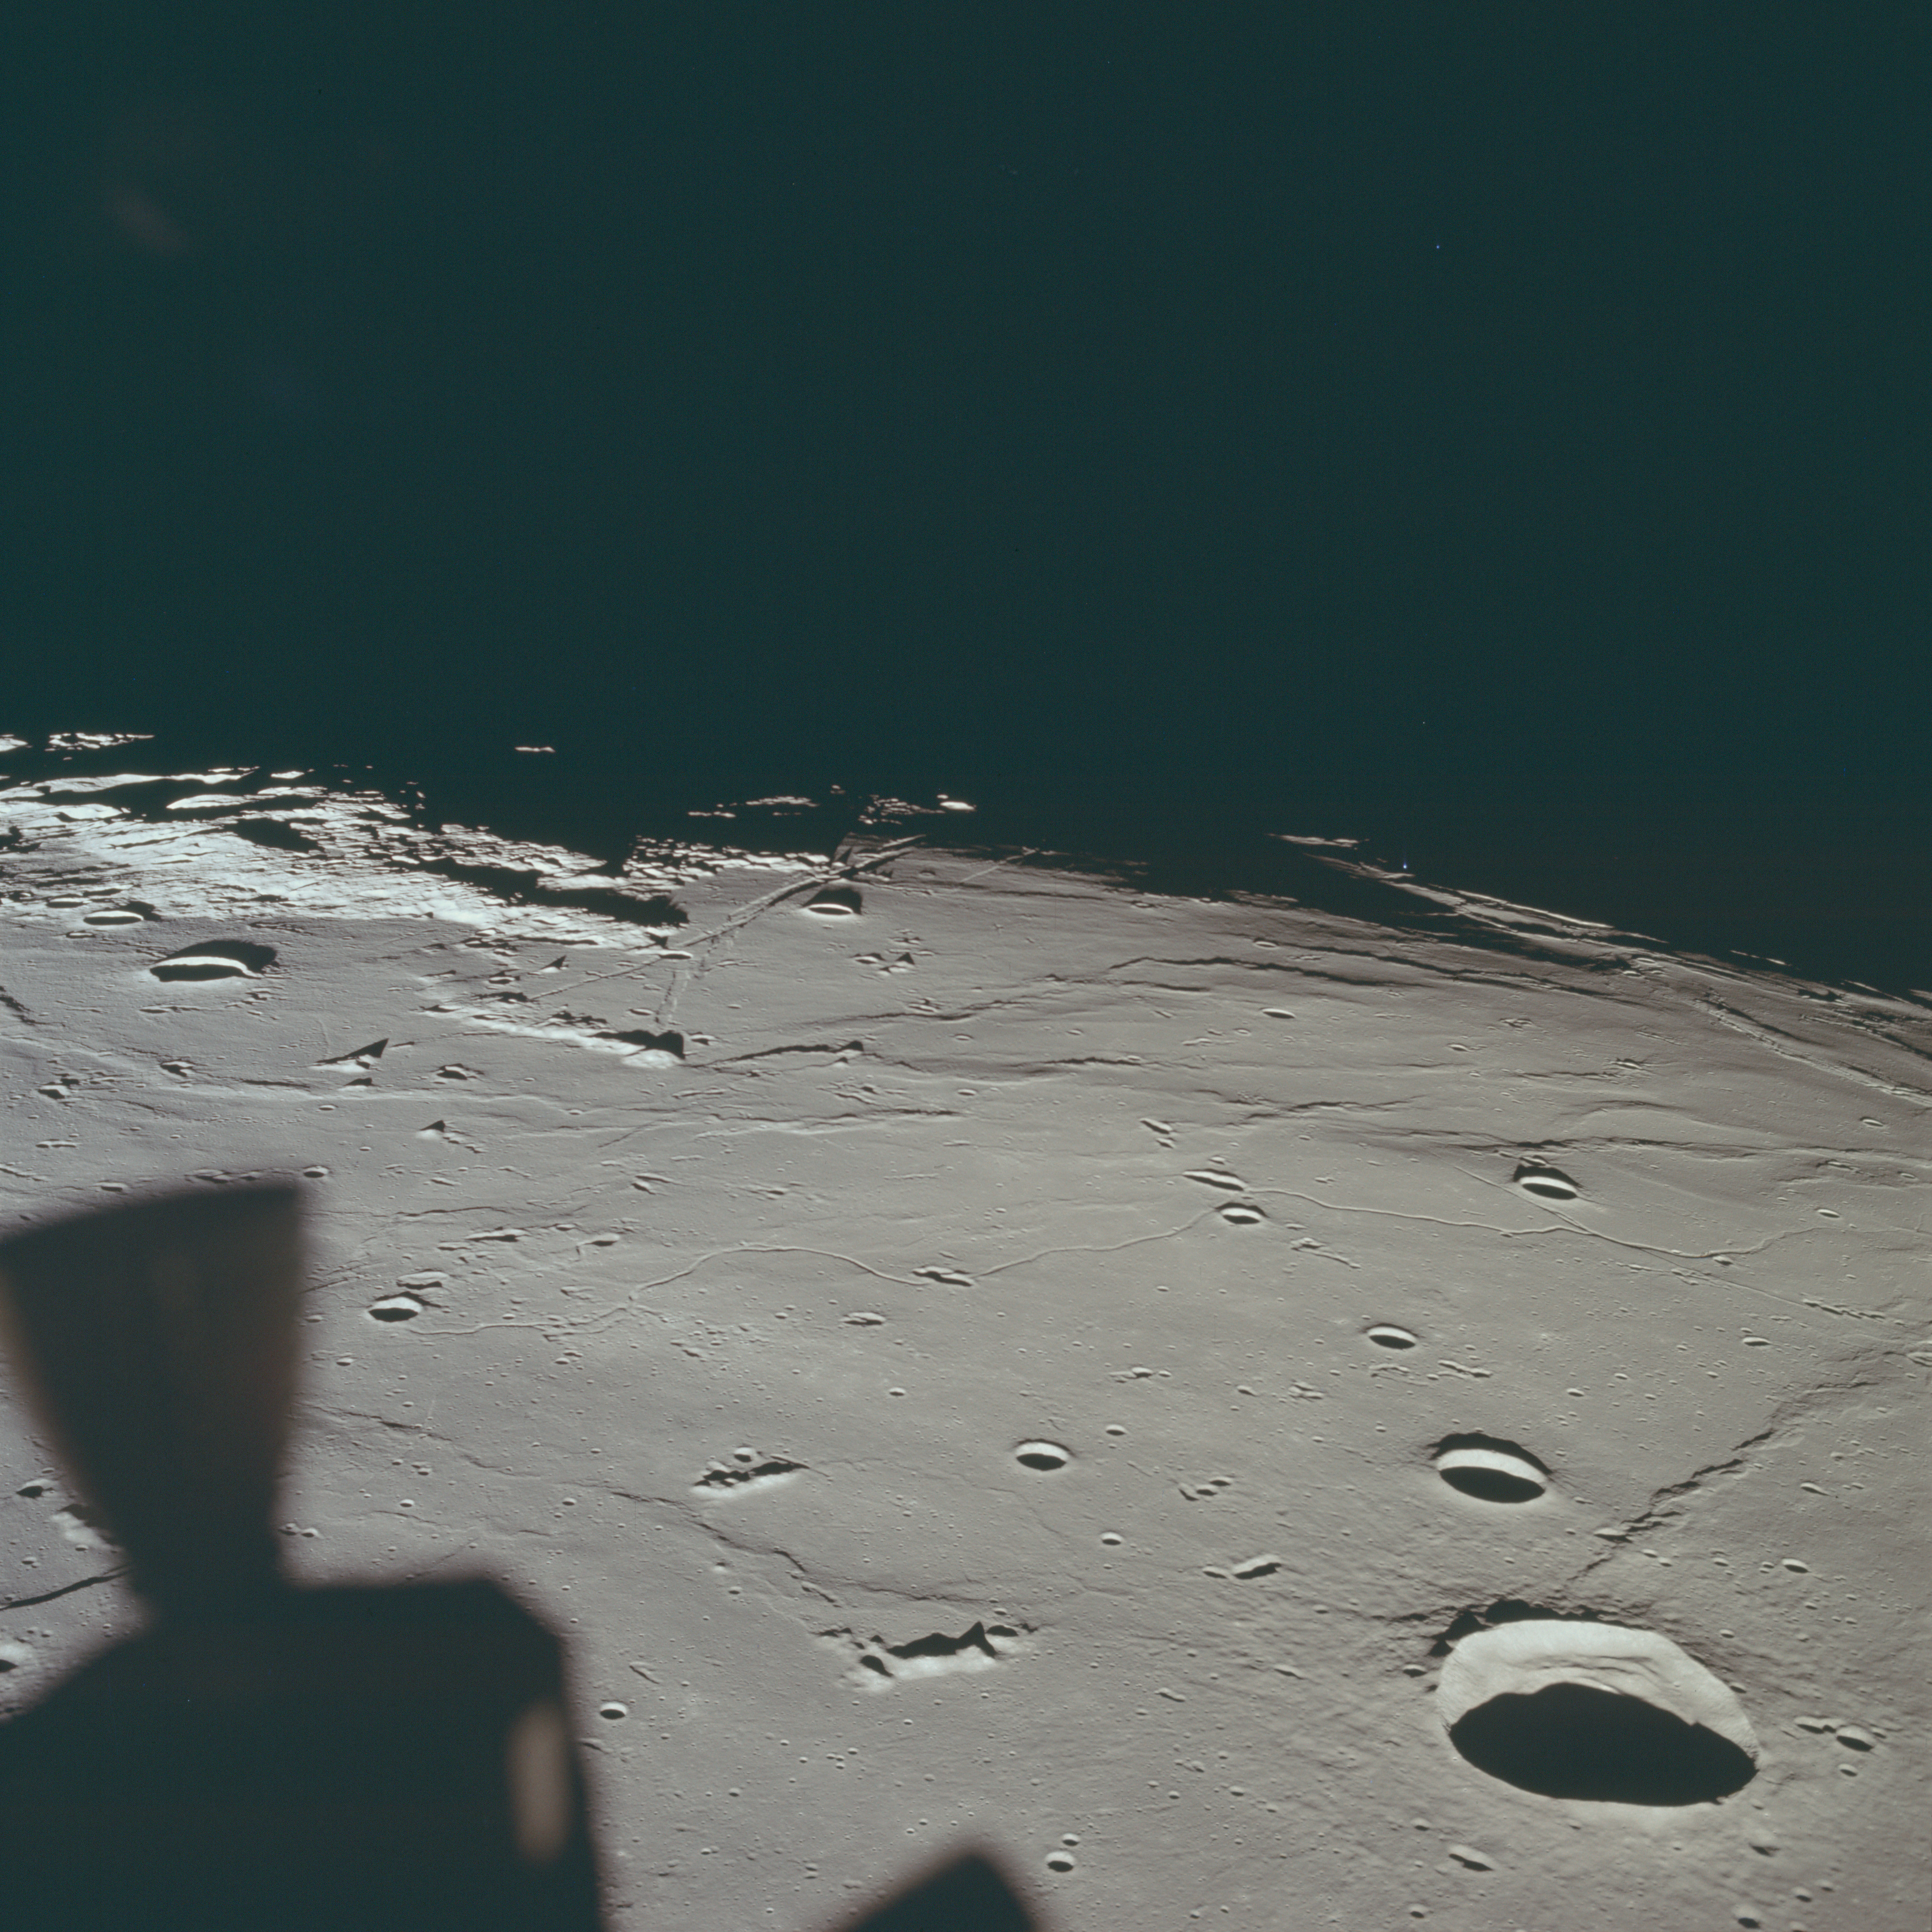 videos of apollo 11 nasa - photo #27